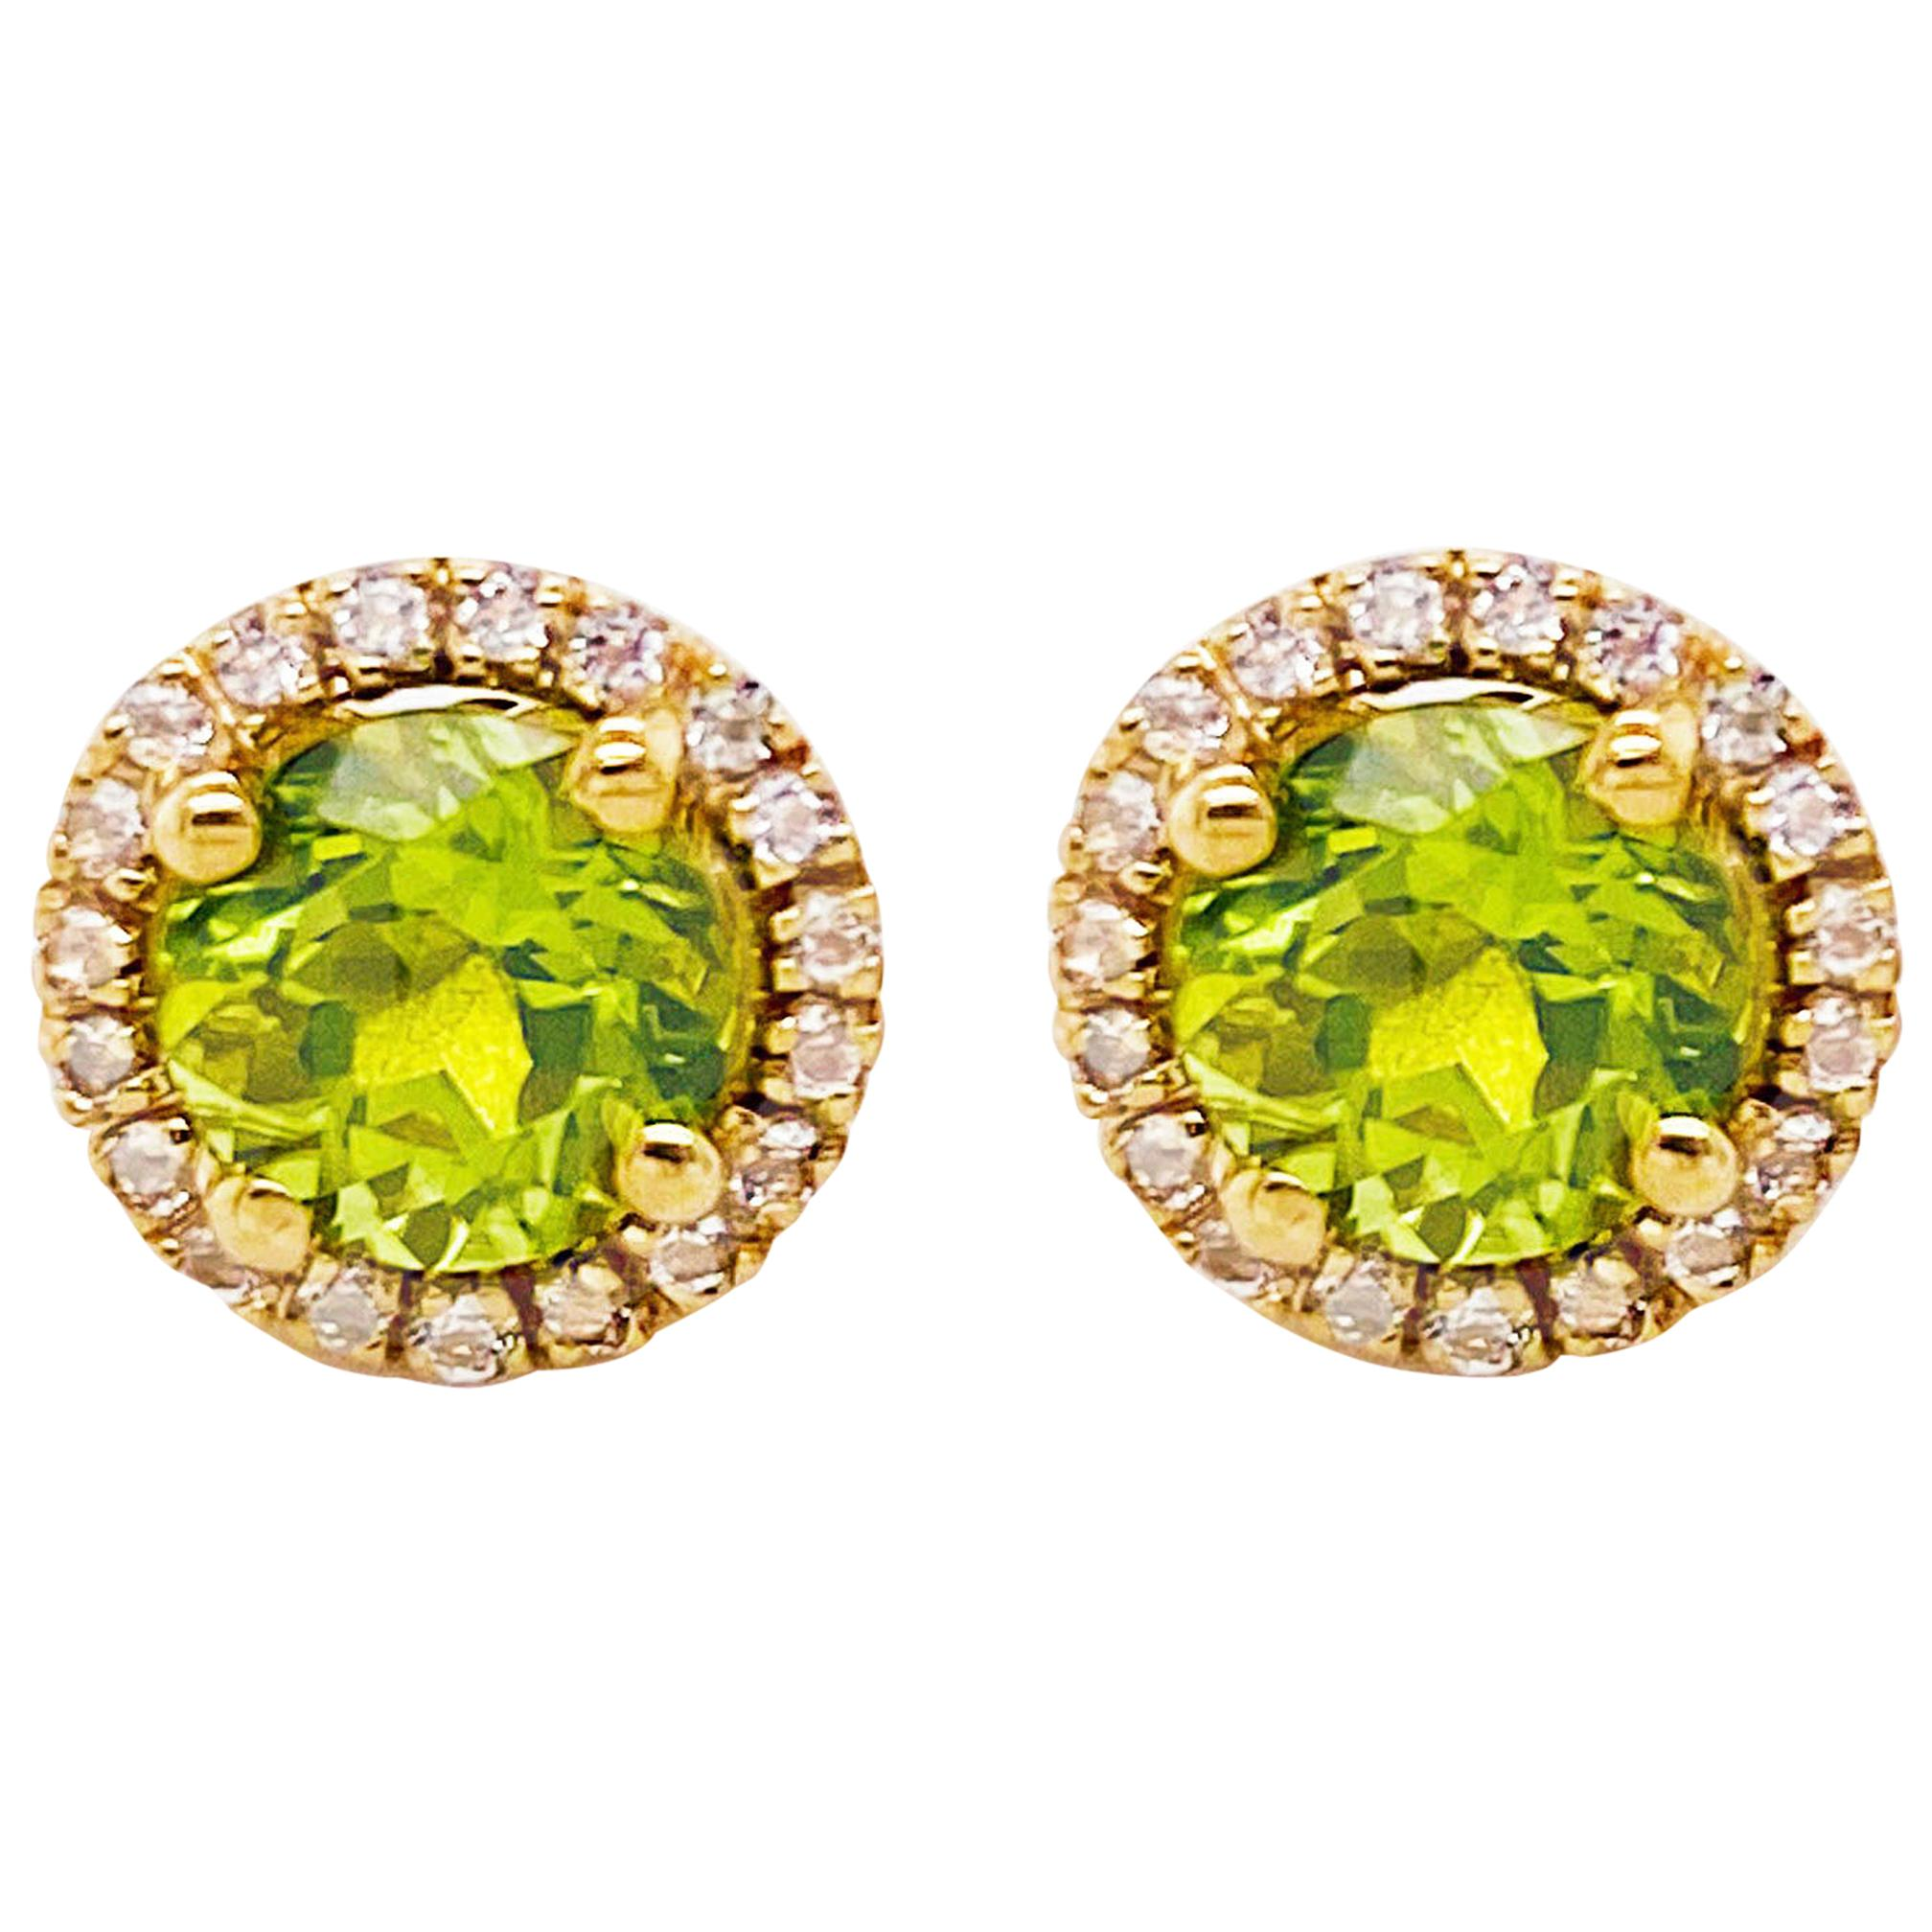 Peridot & Topaz Earrings with White Topaz Halo Studs - 3 Carat Total Weight